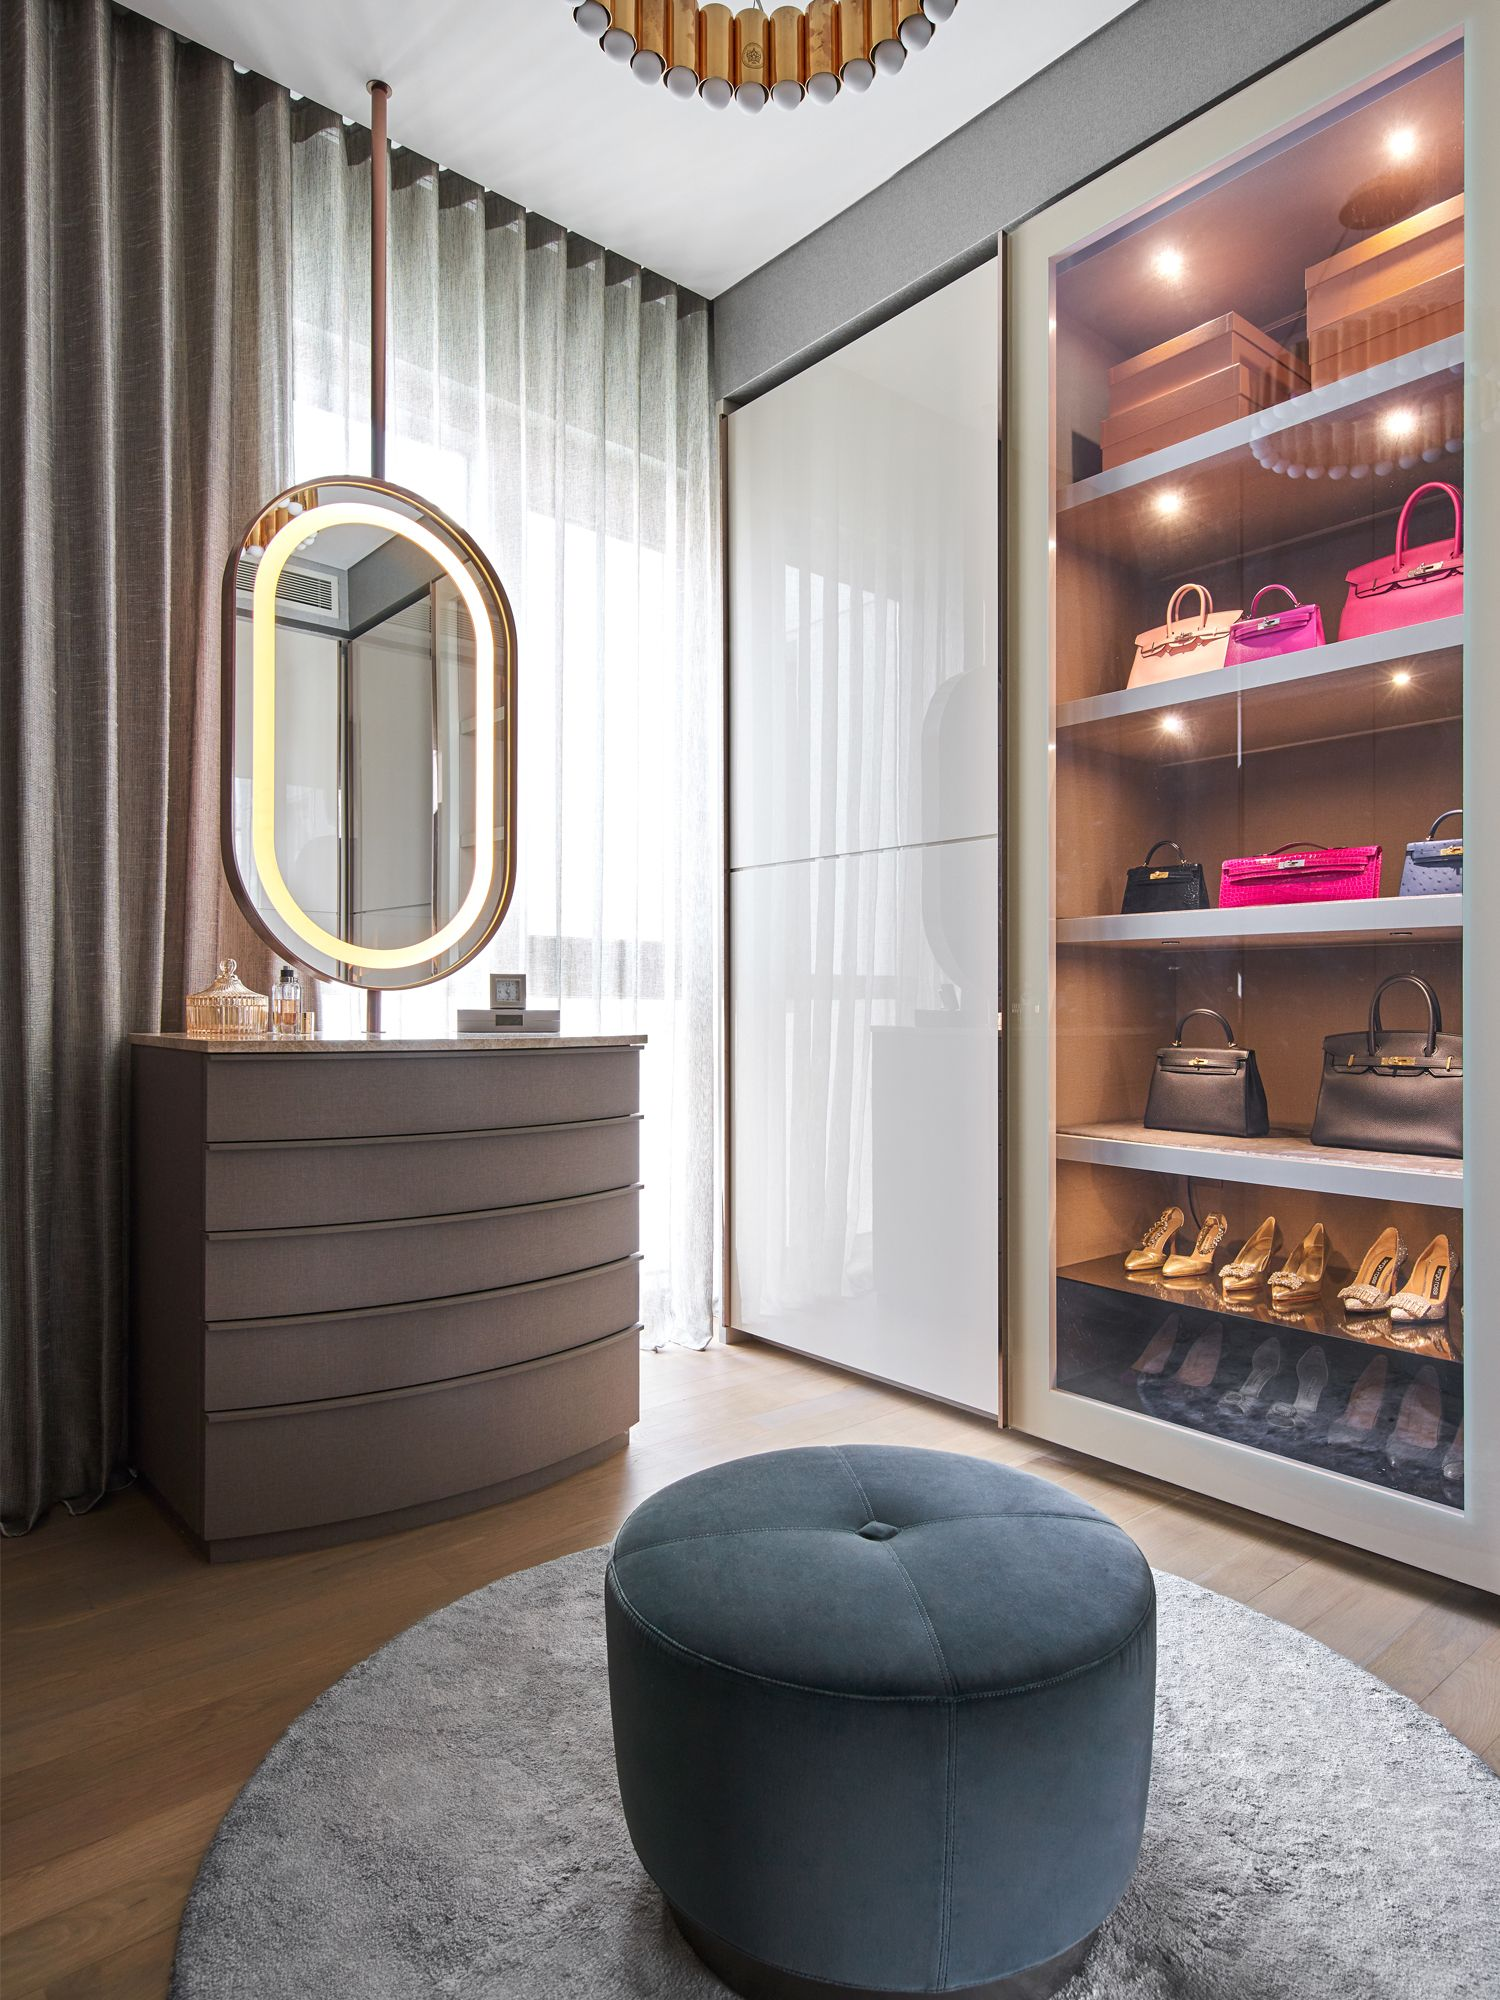 The walk-in wardrobe features cabinetry with gold trimming and built-in lighting to showcase the wife's favourite bags and shoes